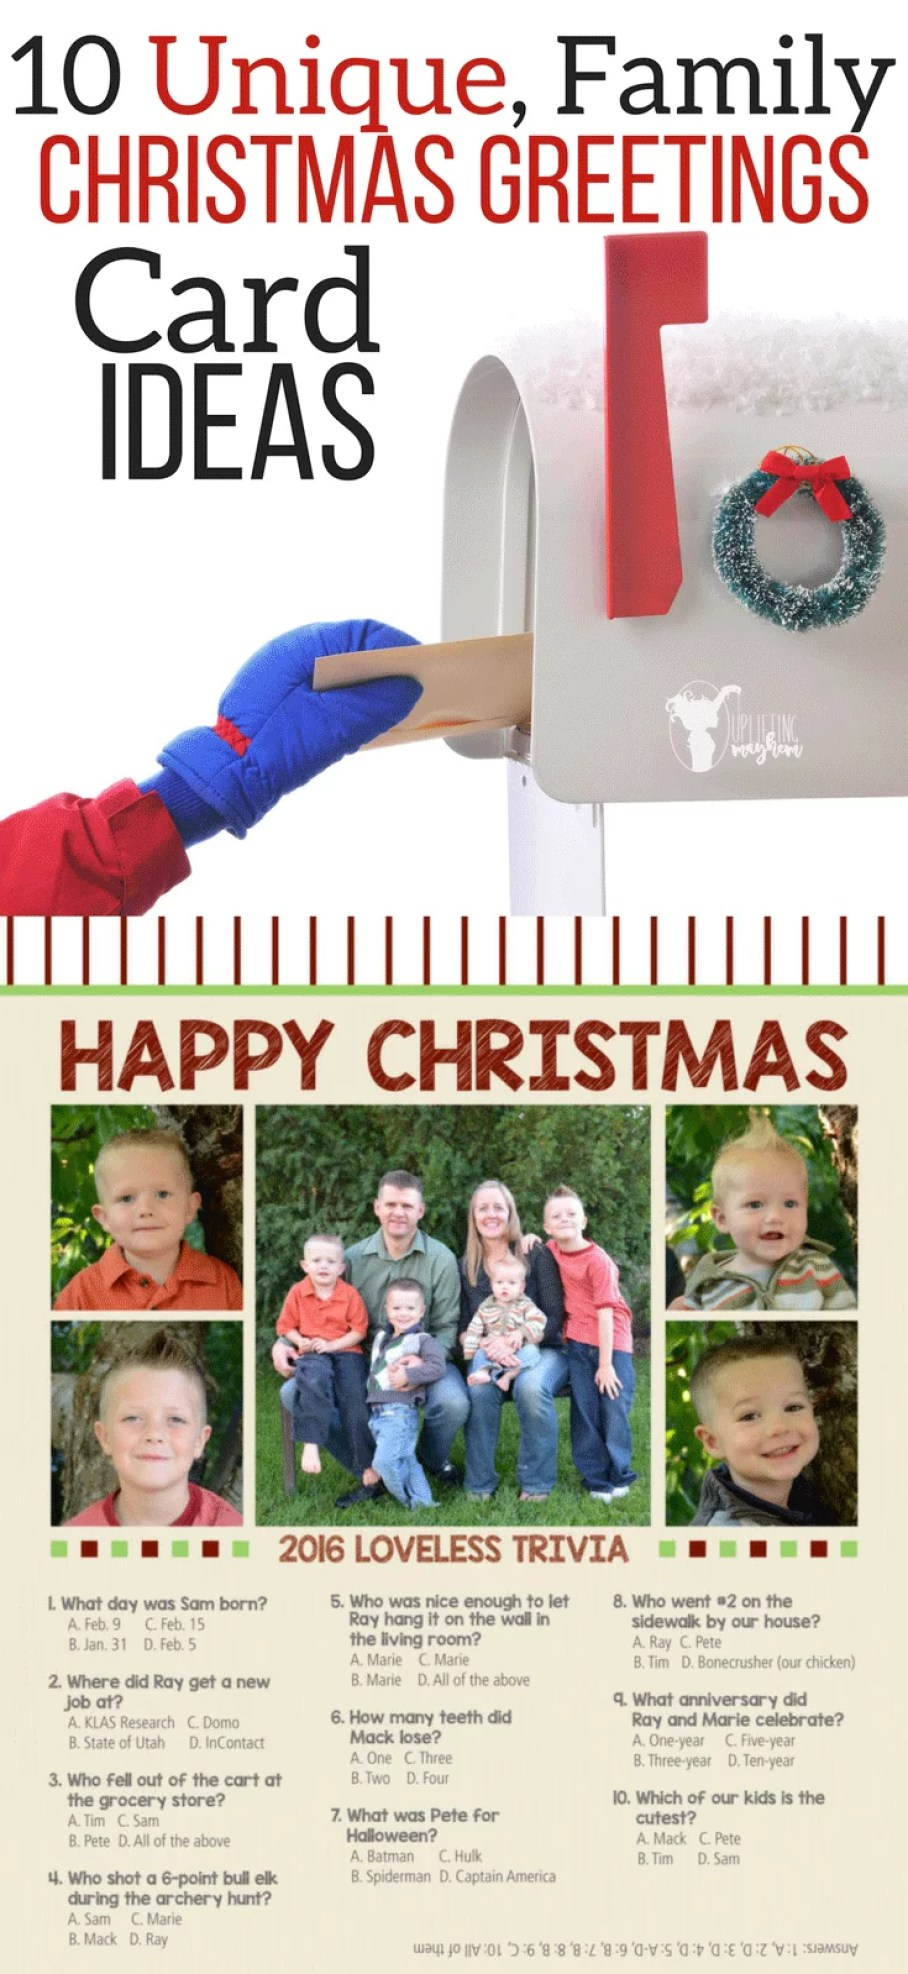 10 unique family christmas greetings card ideas uplifting mayhem 10 unique christmas greeting card ideas m4hsunfo